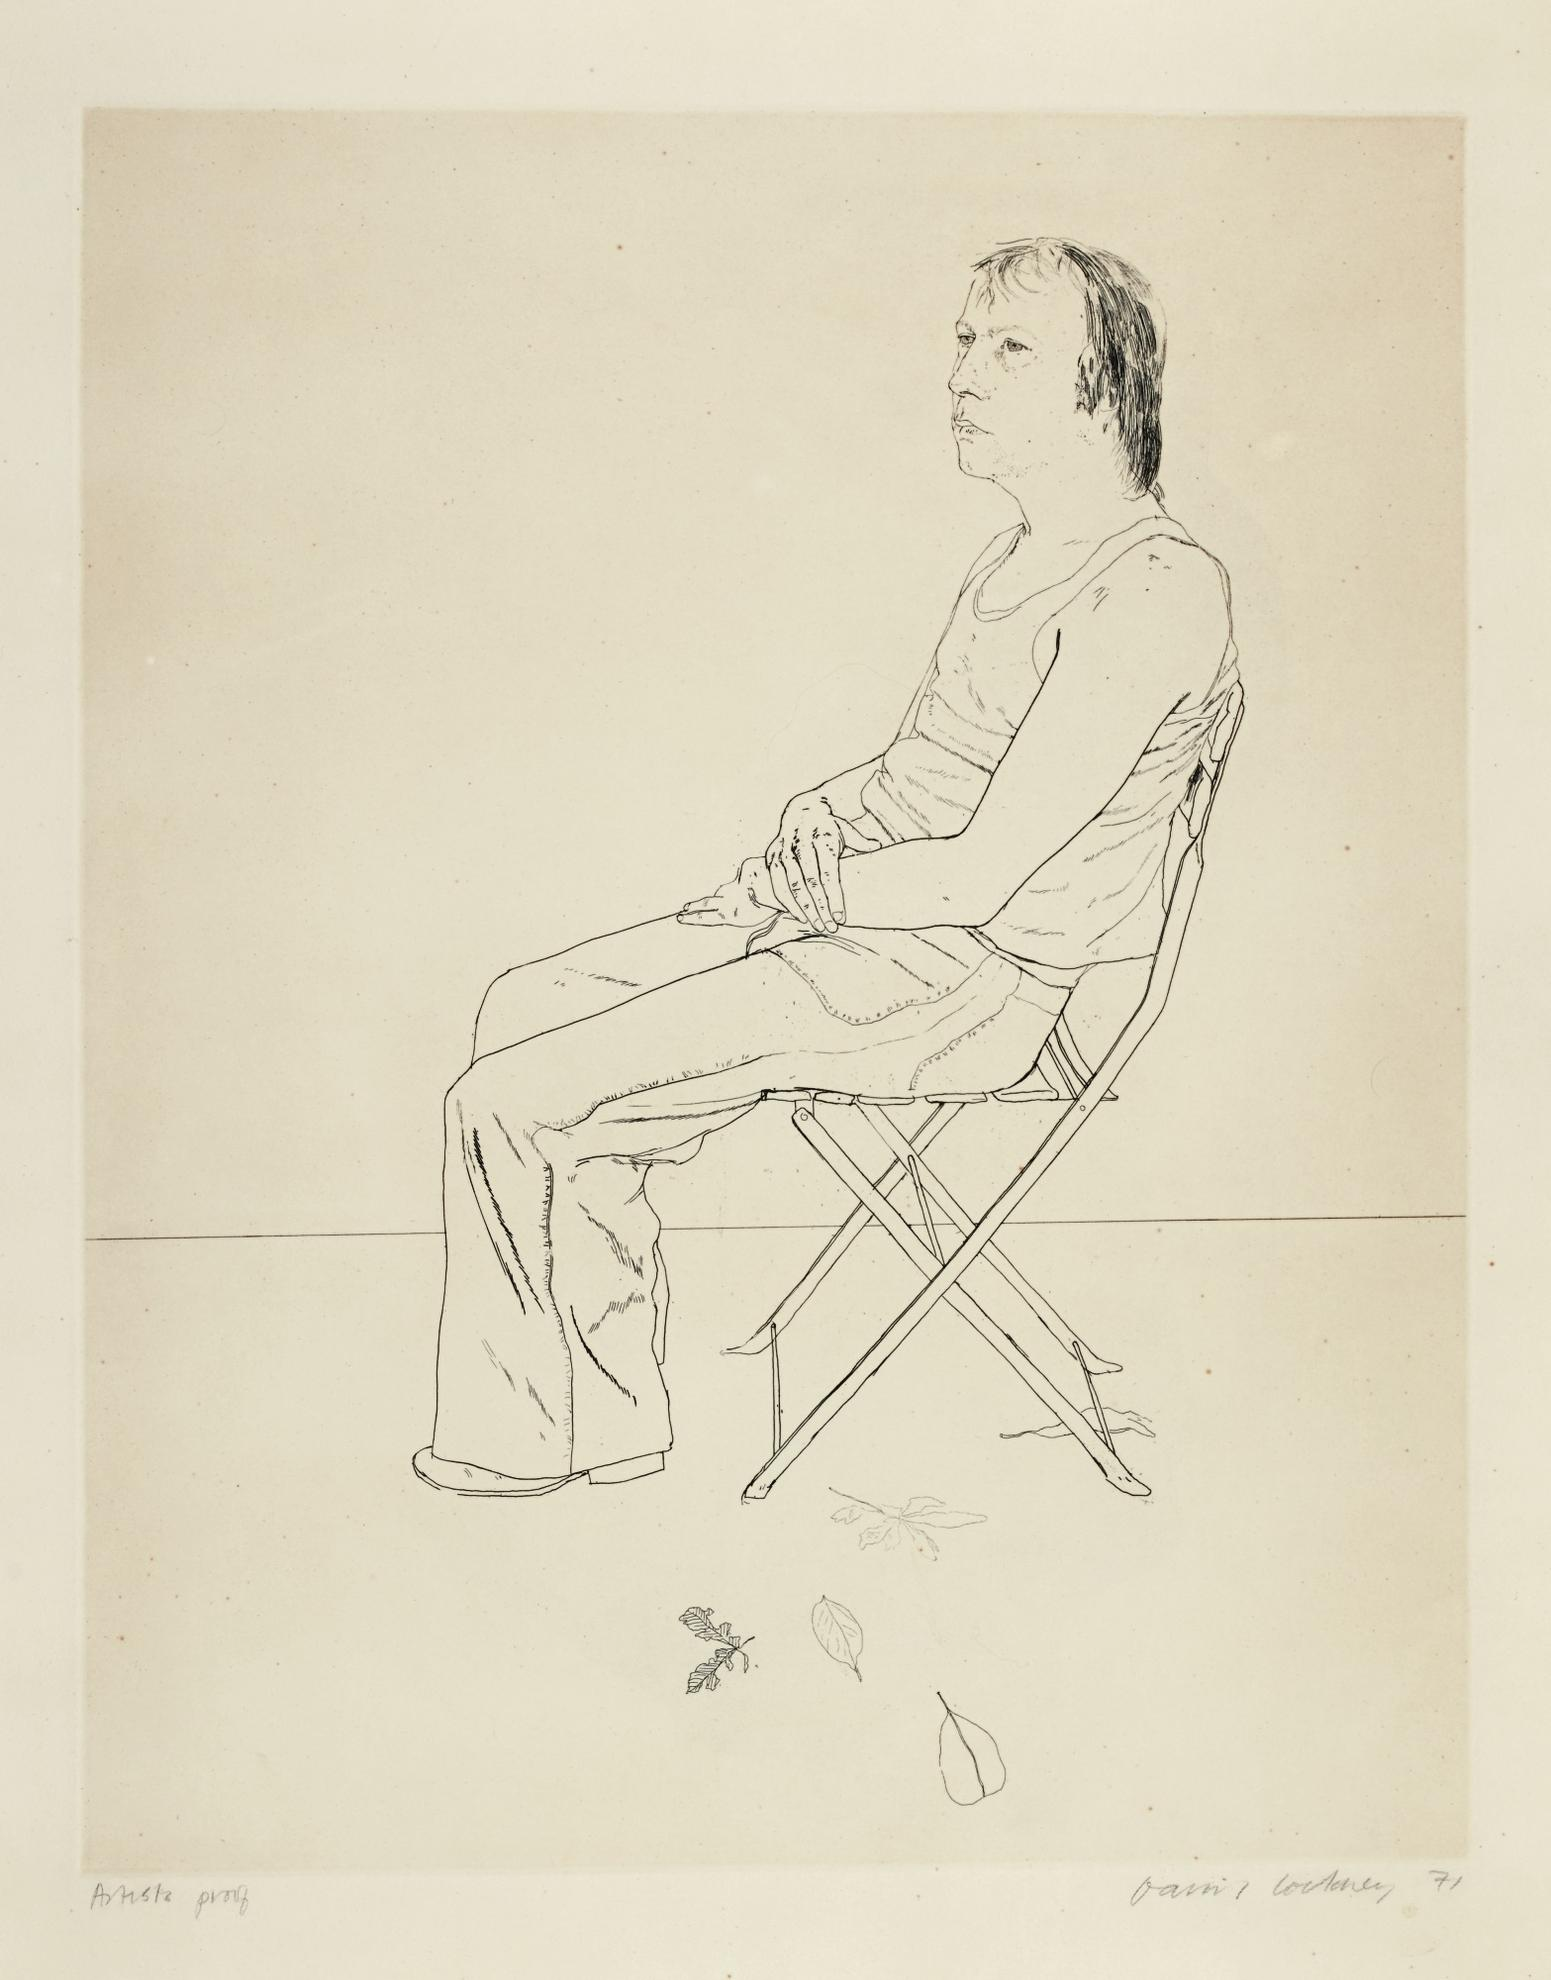 David Hockney-Mo With Five Leaves (S.A.C. 125; Mca Tokyo 117)-1971